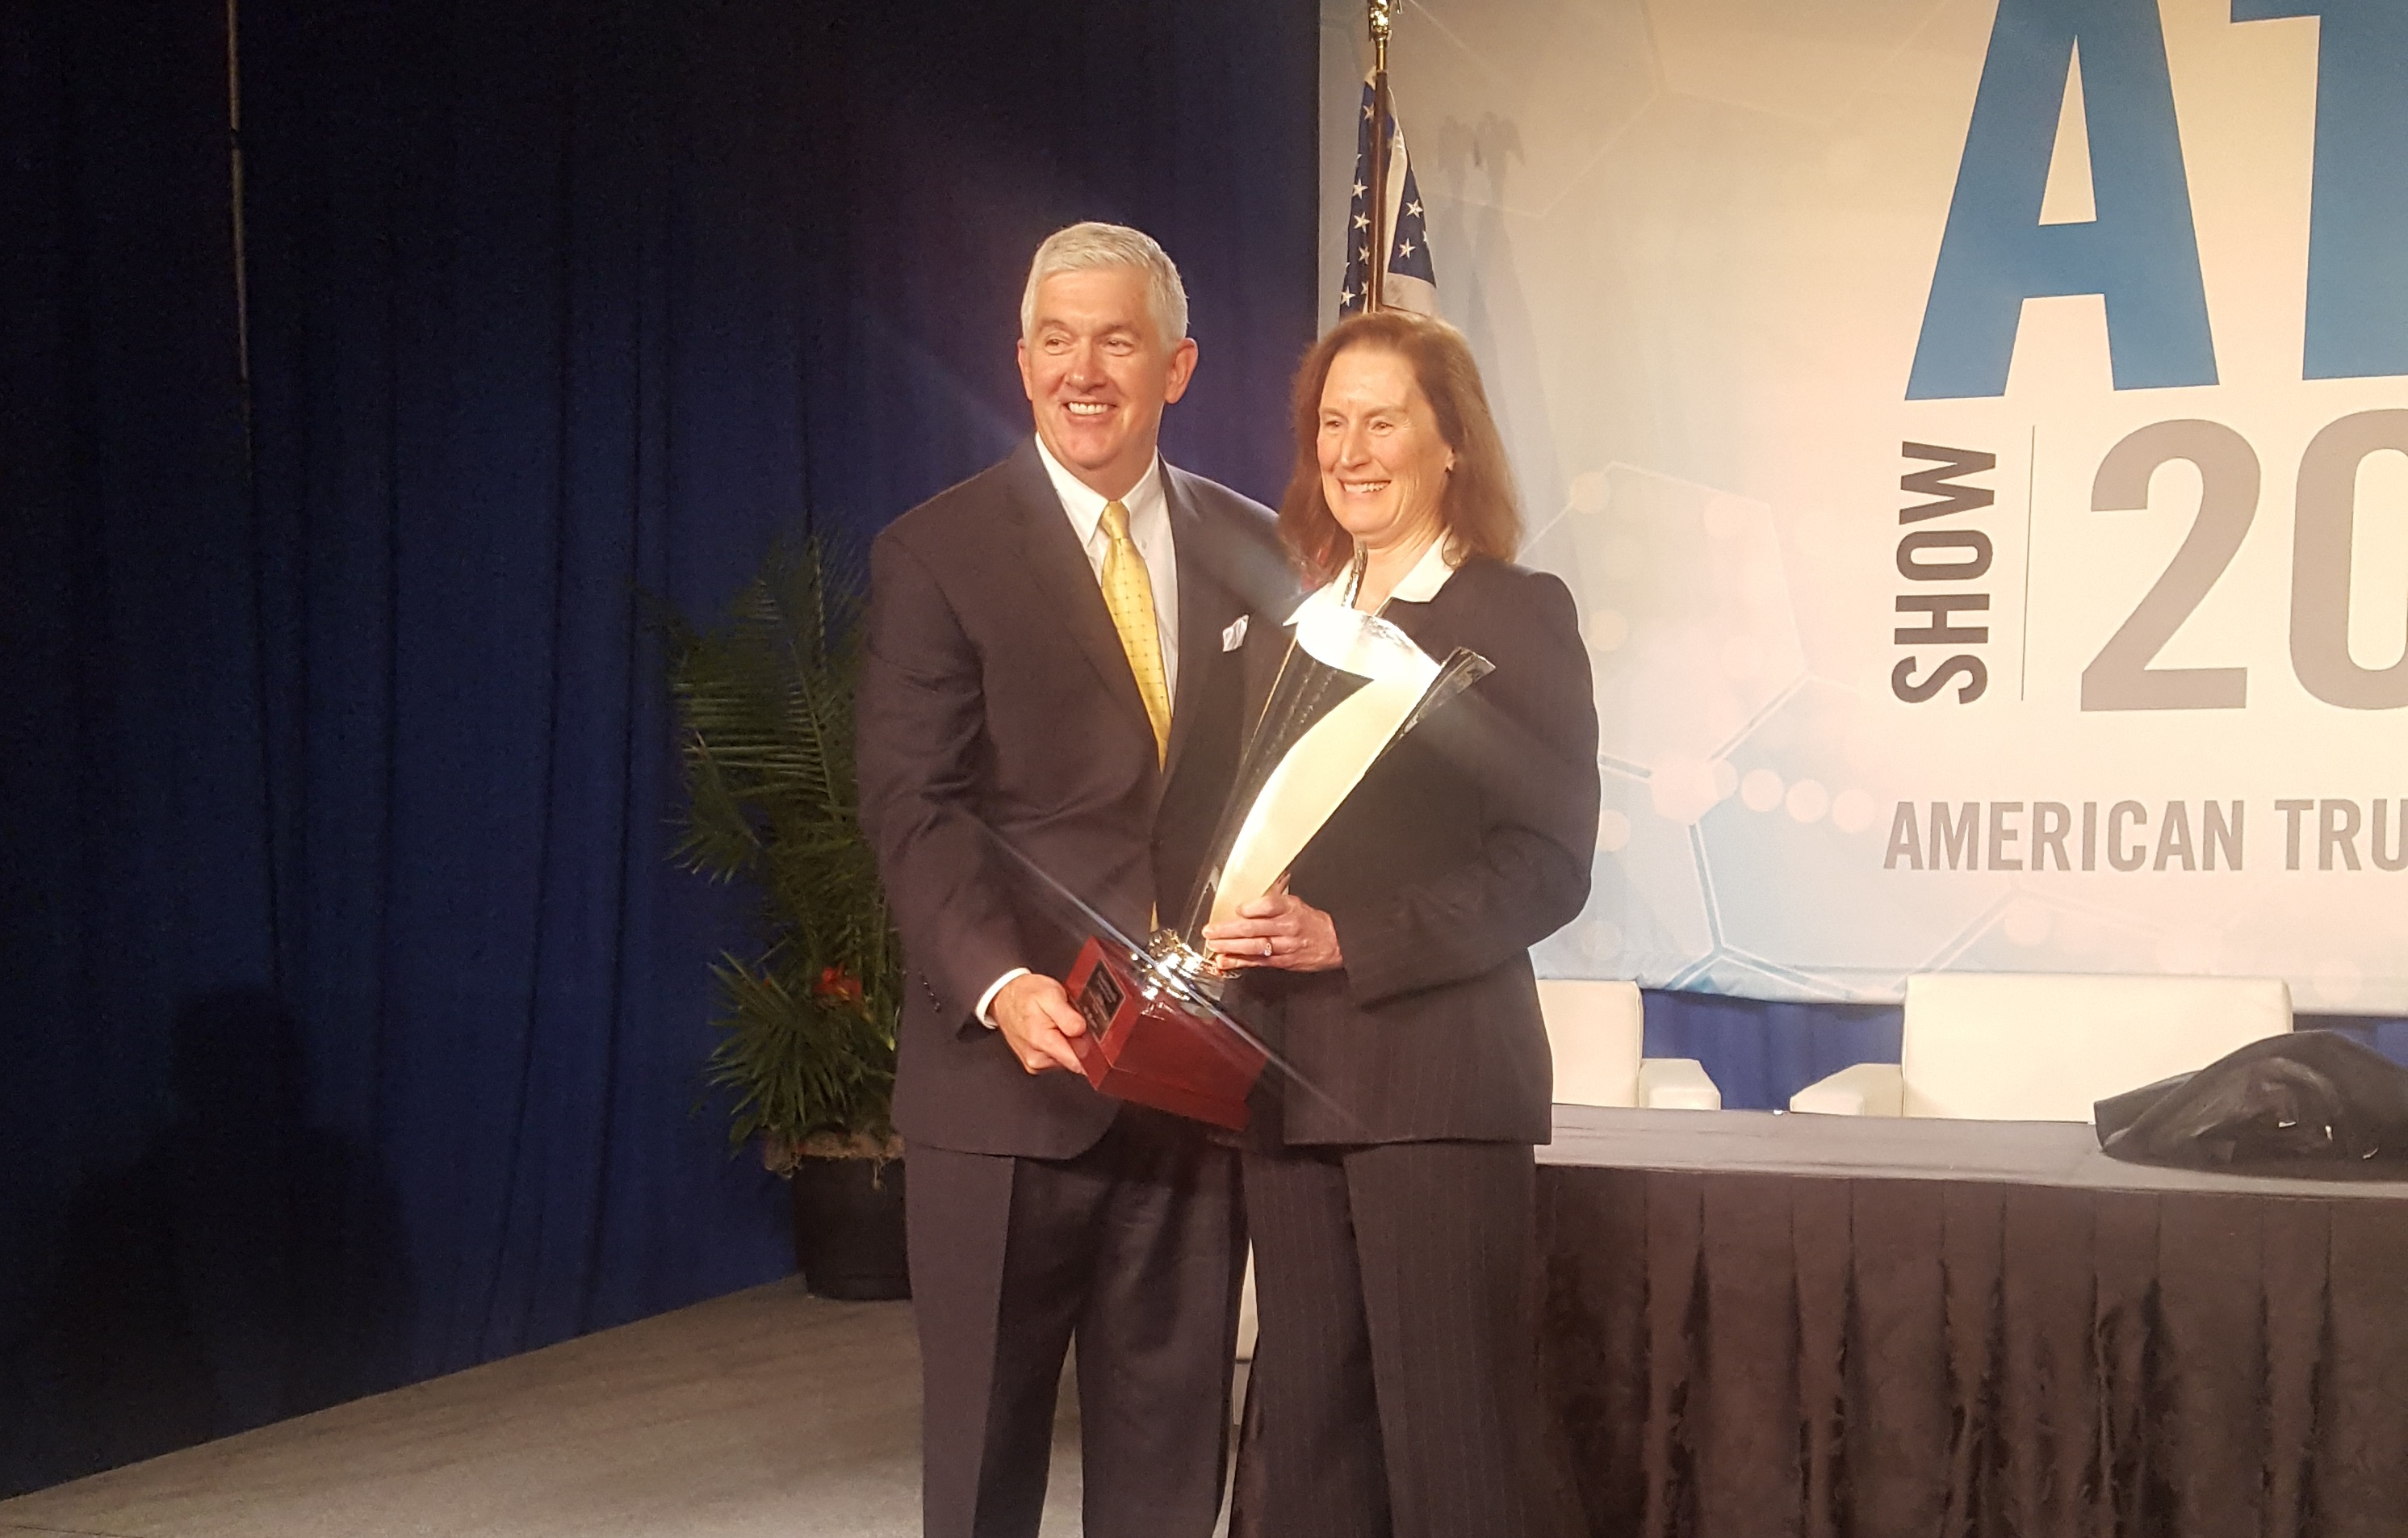 Peach State Truck Centers President Named Truck Dealer of the Year